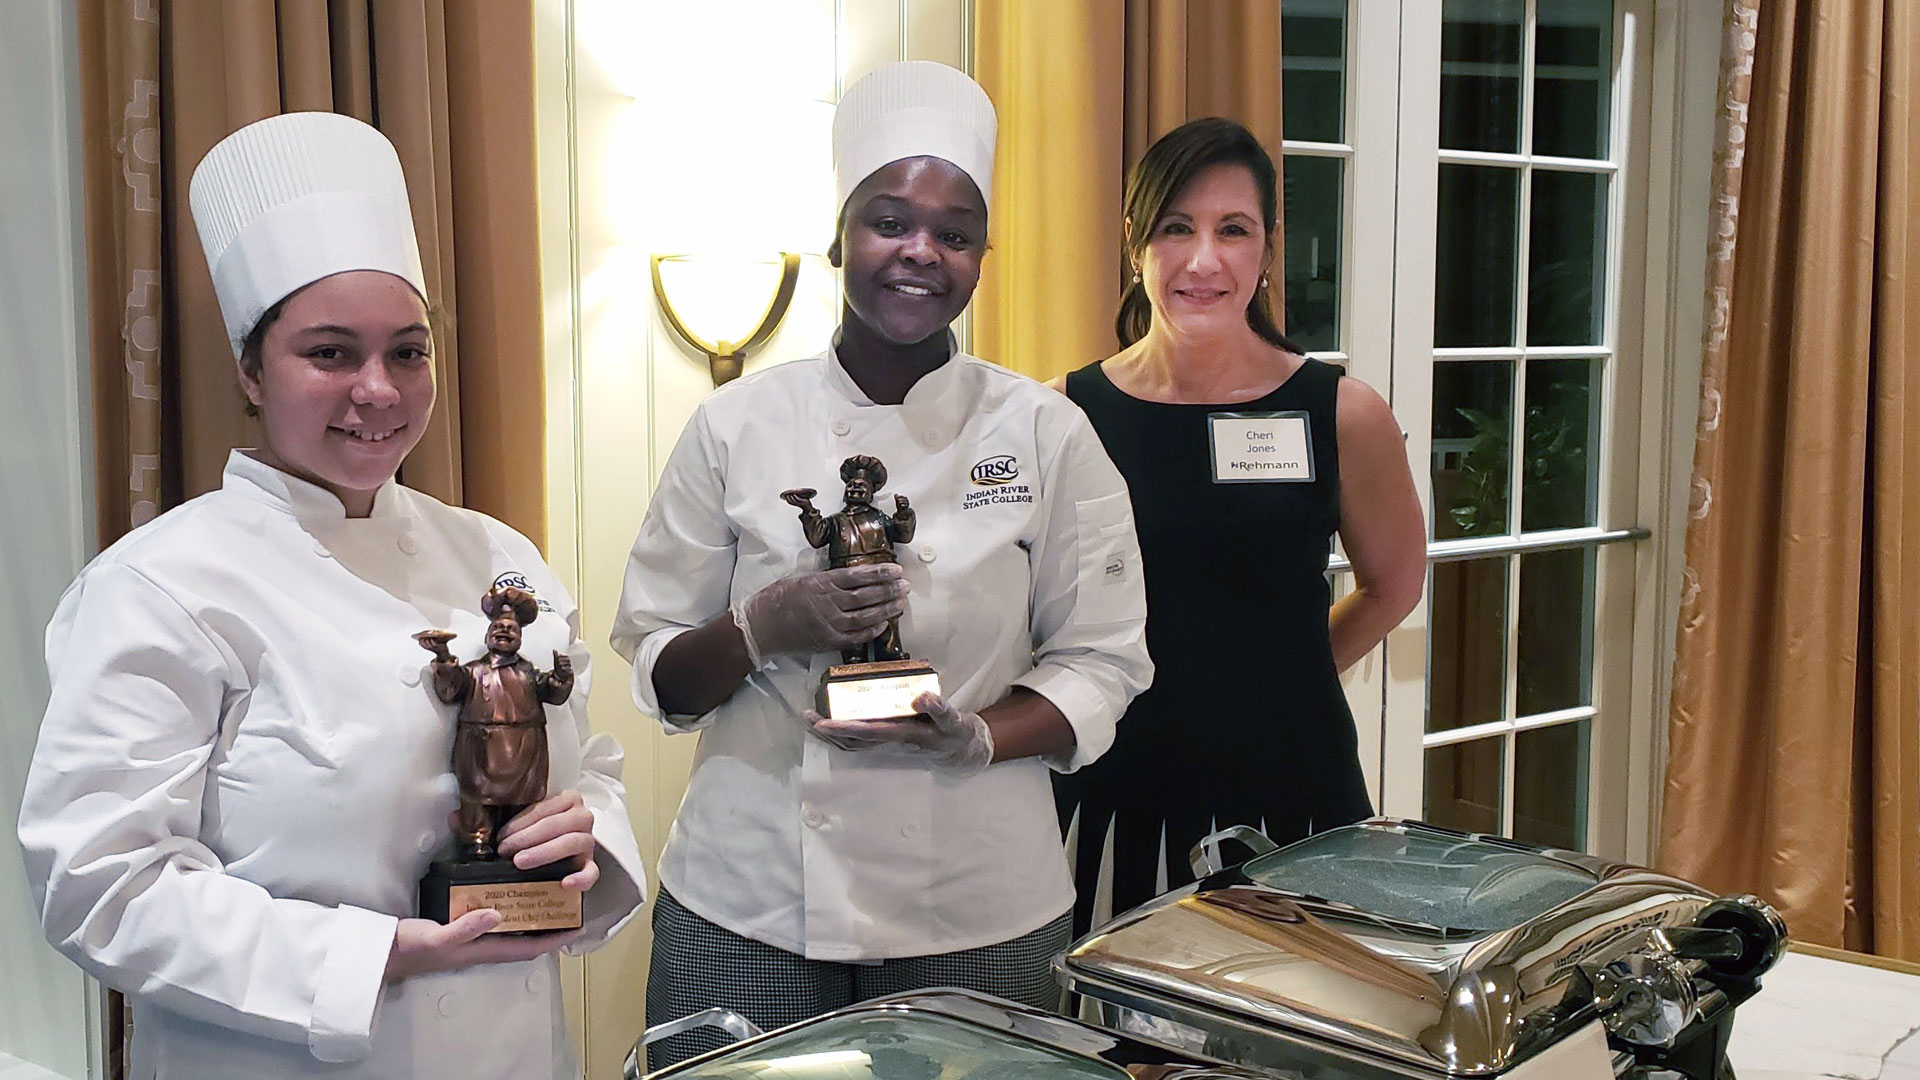 Left to Right: IRSC Chef Challenge winners, Brittany Tierney and Teana Albury with Rehmann Principals Cheri Jones, CPA.